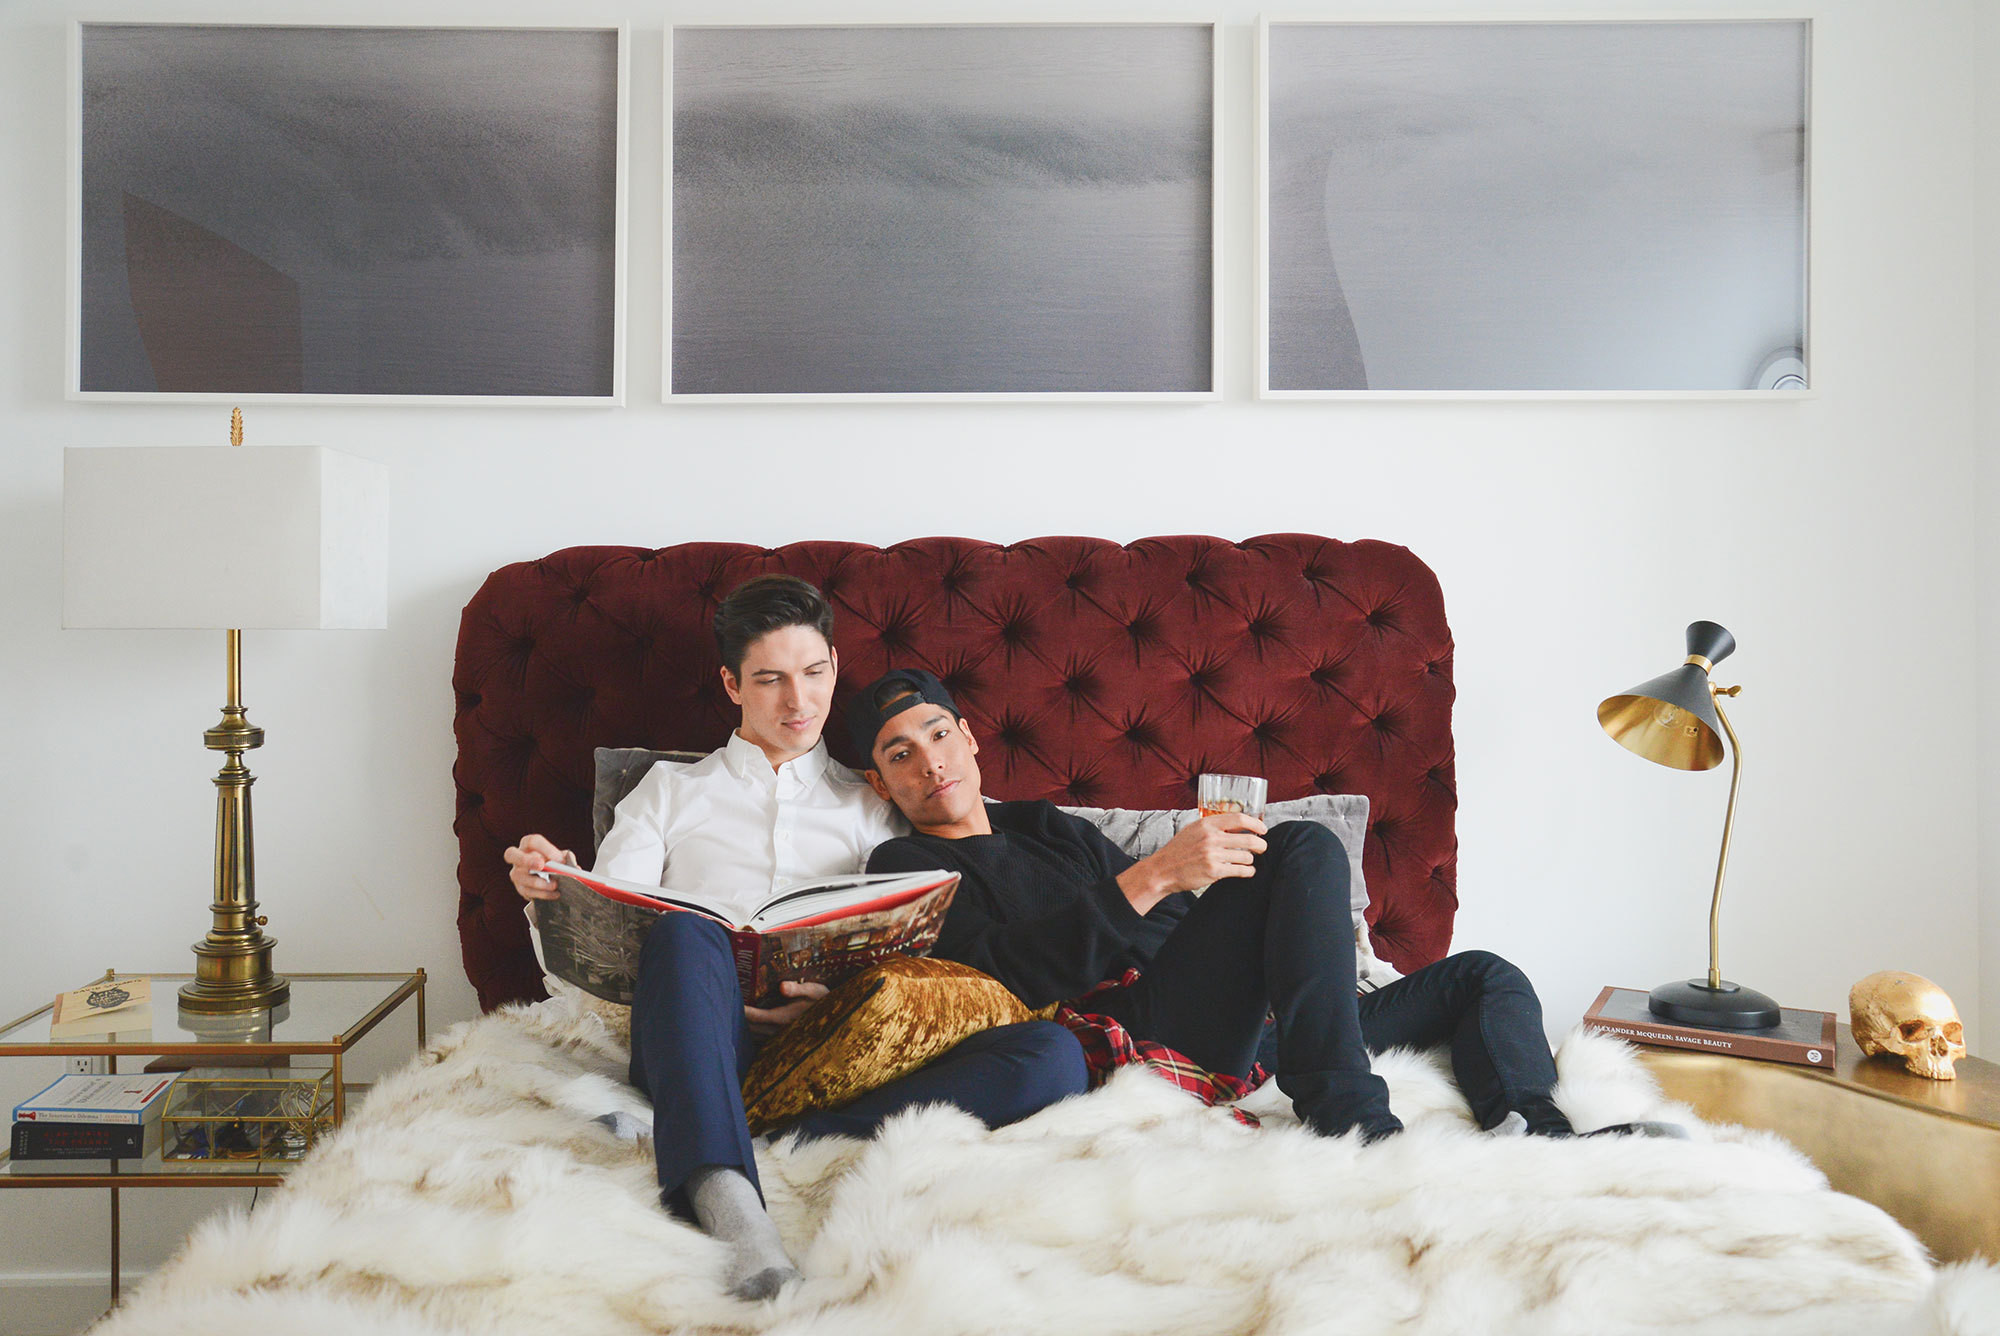 Santos and boyfriend Ross Matsubara kick back in their new fur-covered bed.